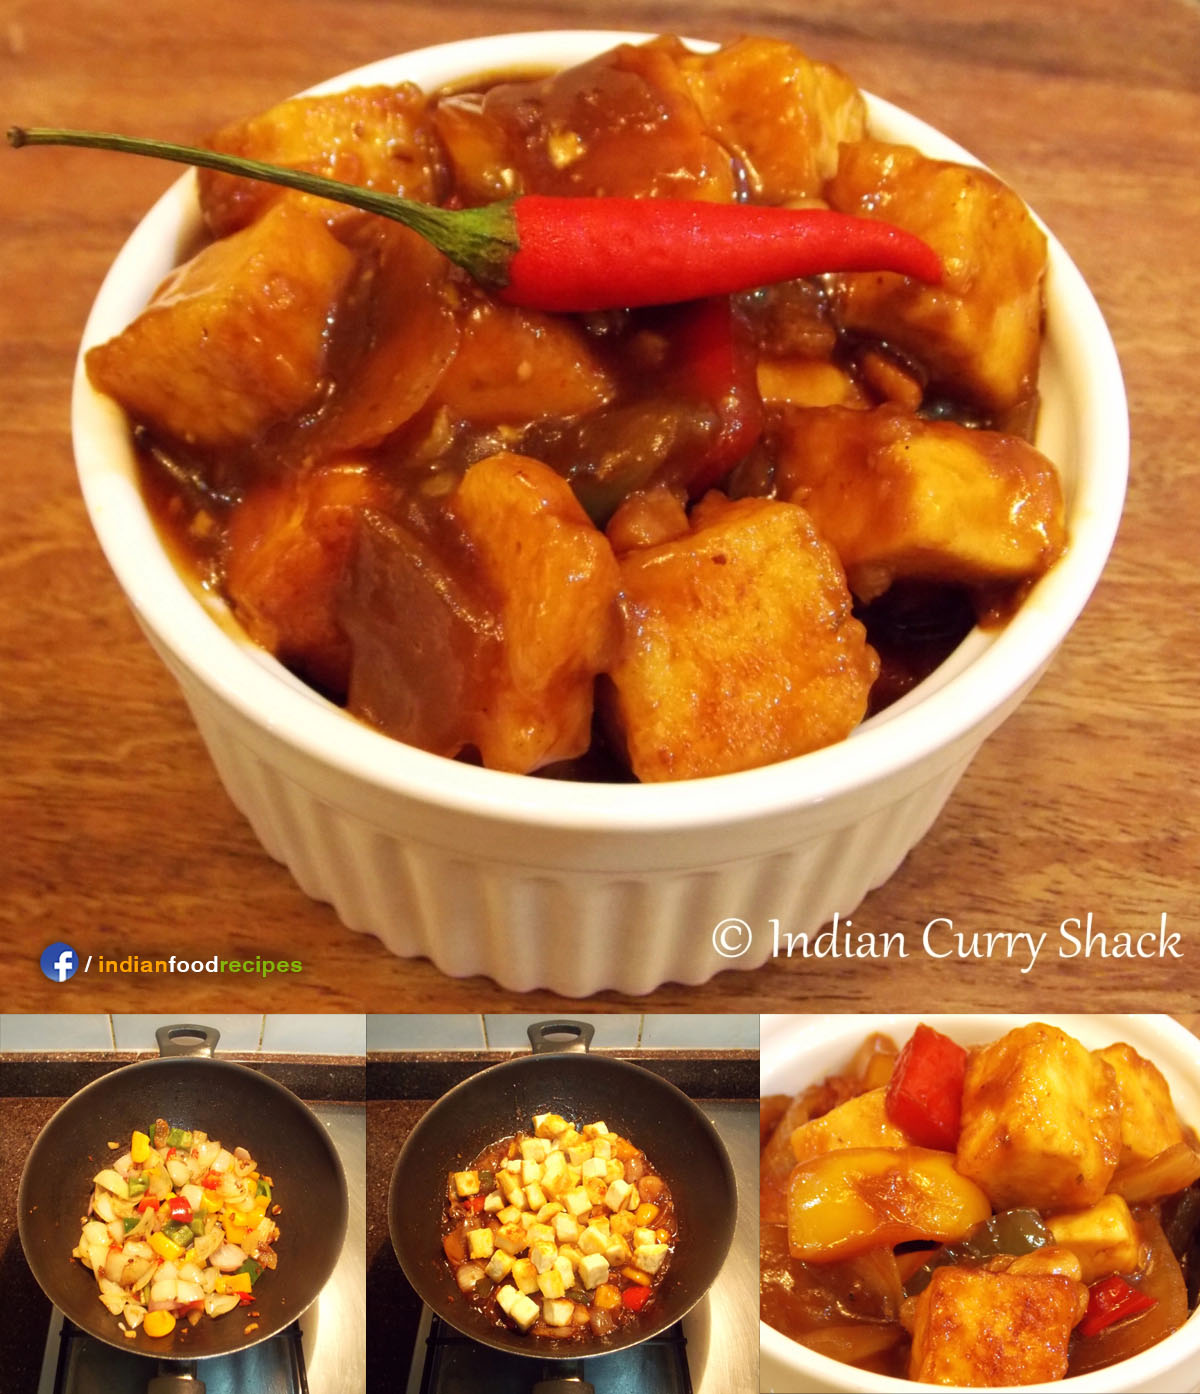 Chilli Paneer recipe step by step